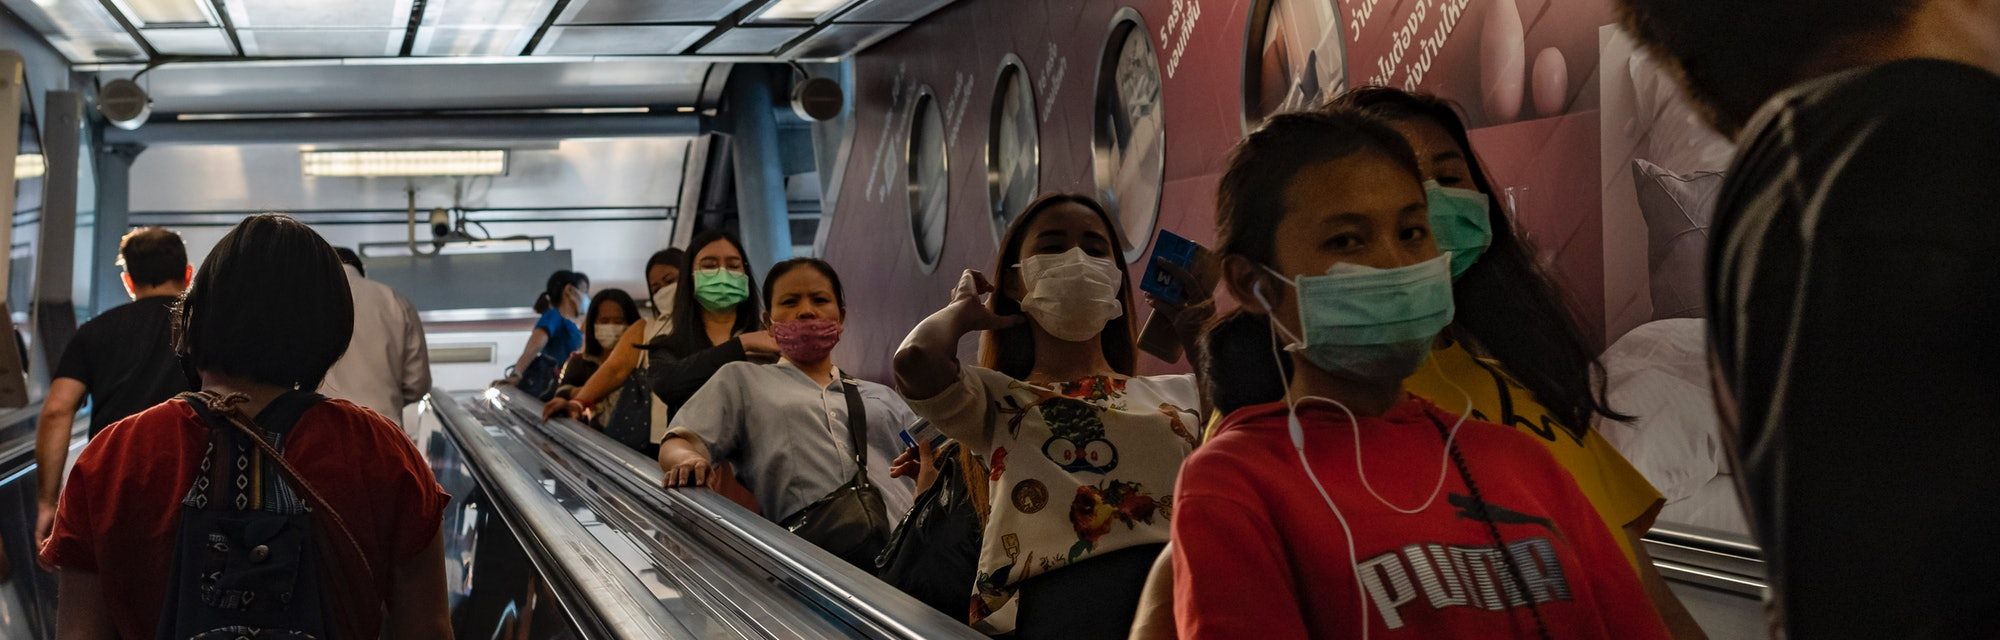 People walk while wearing protective face masks due to concern over the spread of coronavirus in Bangkok, Thailand, on February 6, 2020.